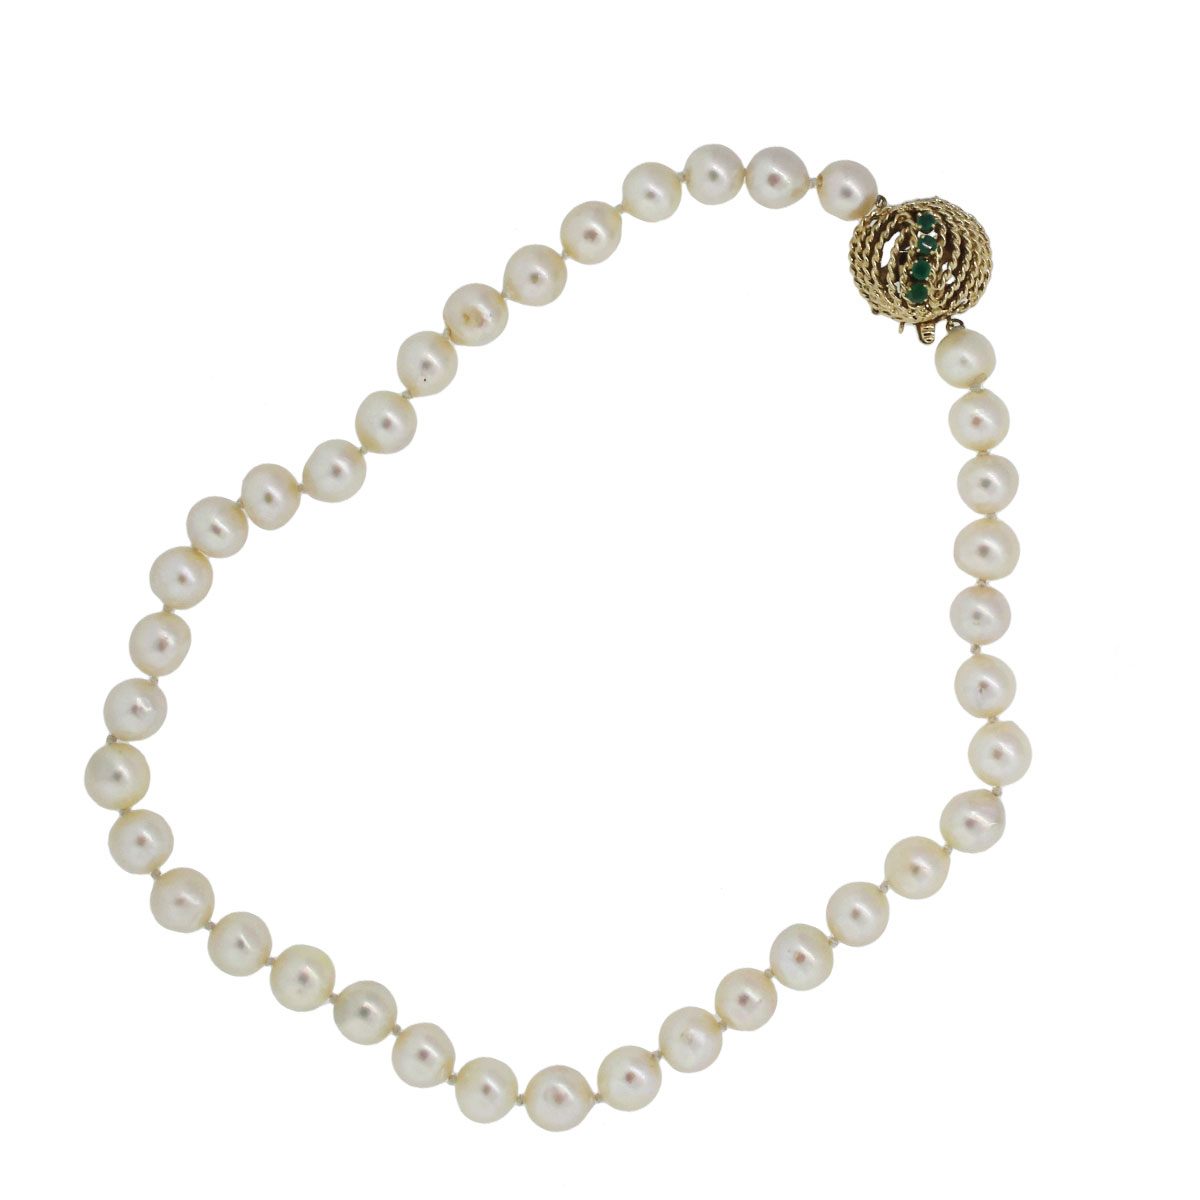 14k Yellow Gold 9mm Cultured Pearl Necklace